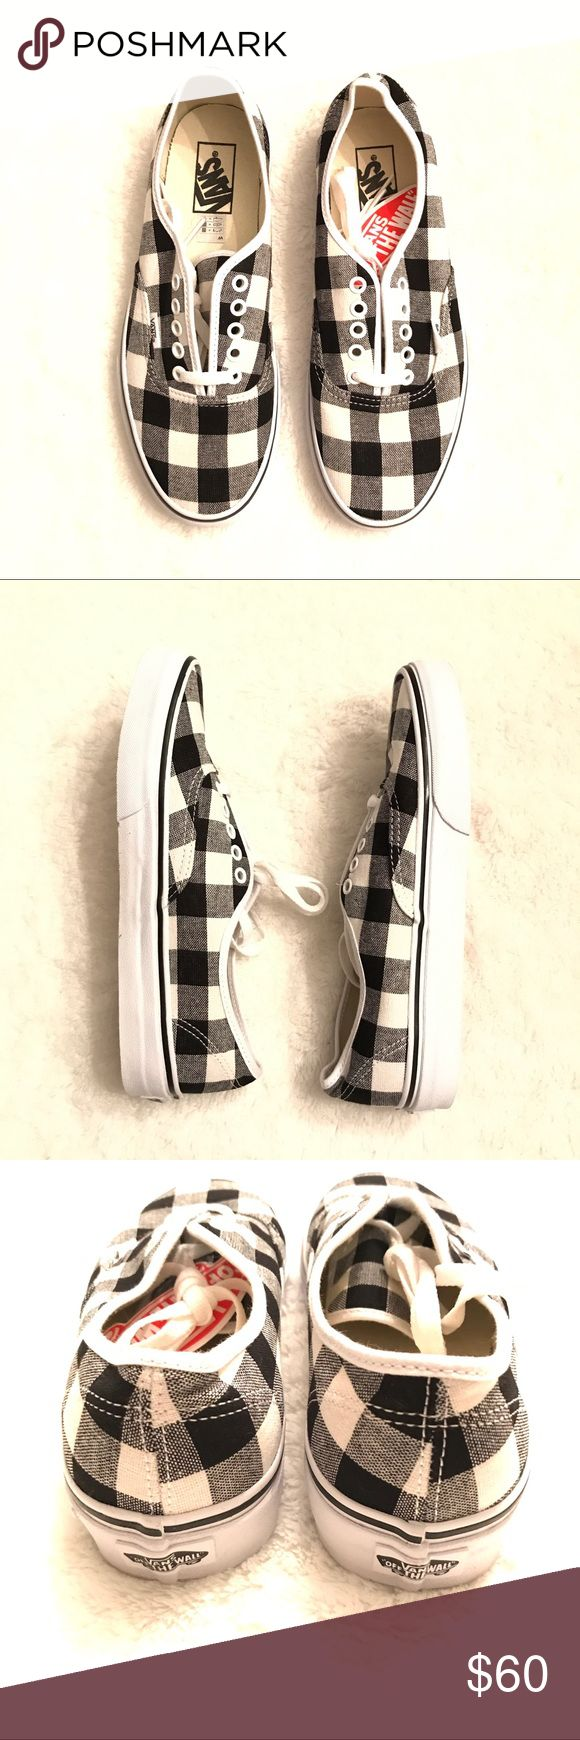 Madewell x Vans Lace-up Sneakers in Gingham **SOLD OUT at Madewell** Madewell x Vans unisex authentic lace-up sneakers in gingham.                                                                               Synonymous with skateboarders, surfers and Southern California, Vans is a true sneaker icon. Add some cool to your casual with these timeless canvas shoes, done up in bold gingham checks just for us. Unisex sizing: US Men 8/US Women 9.5                                         Canvas…